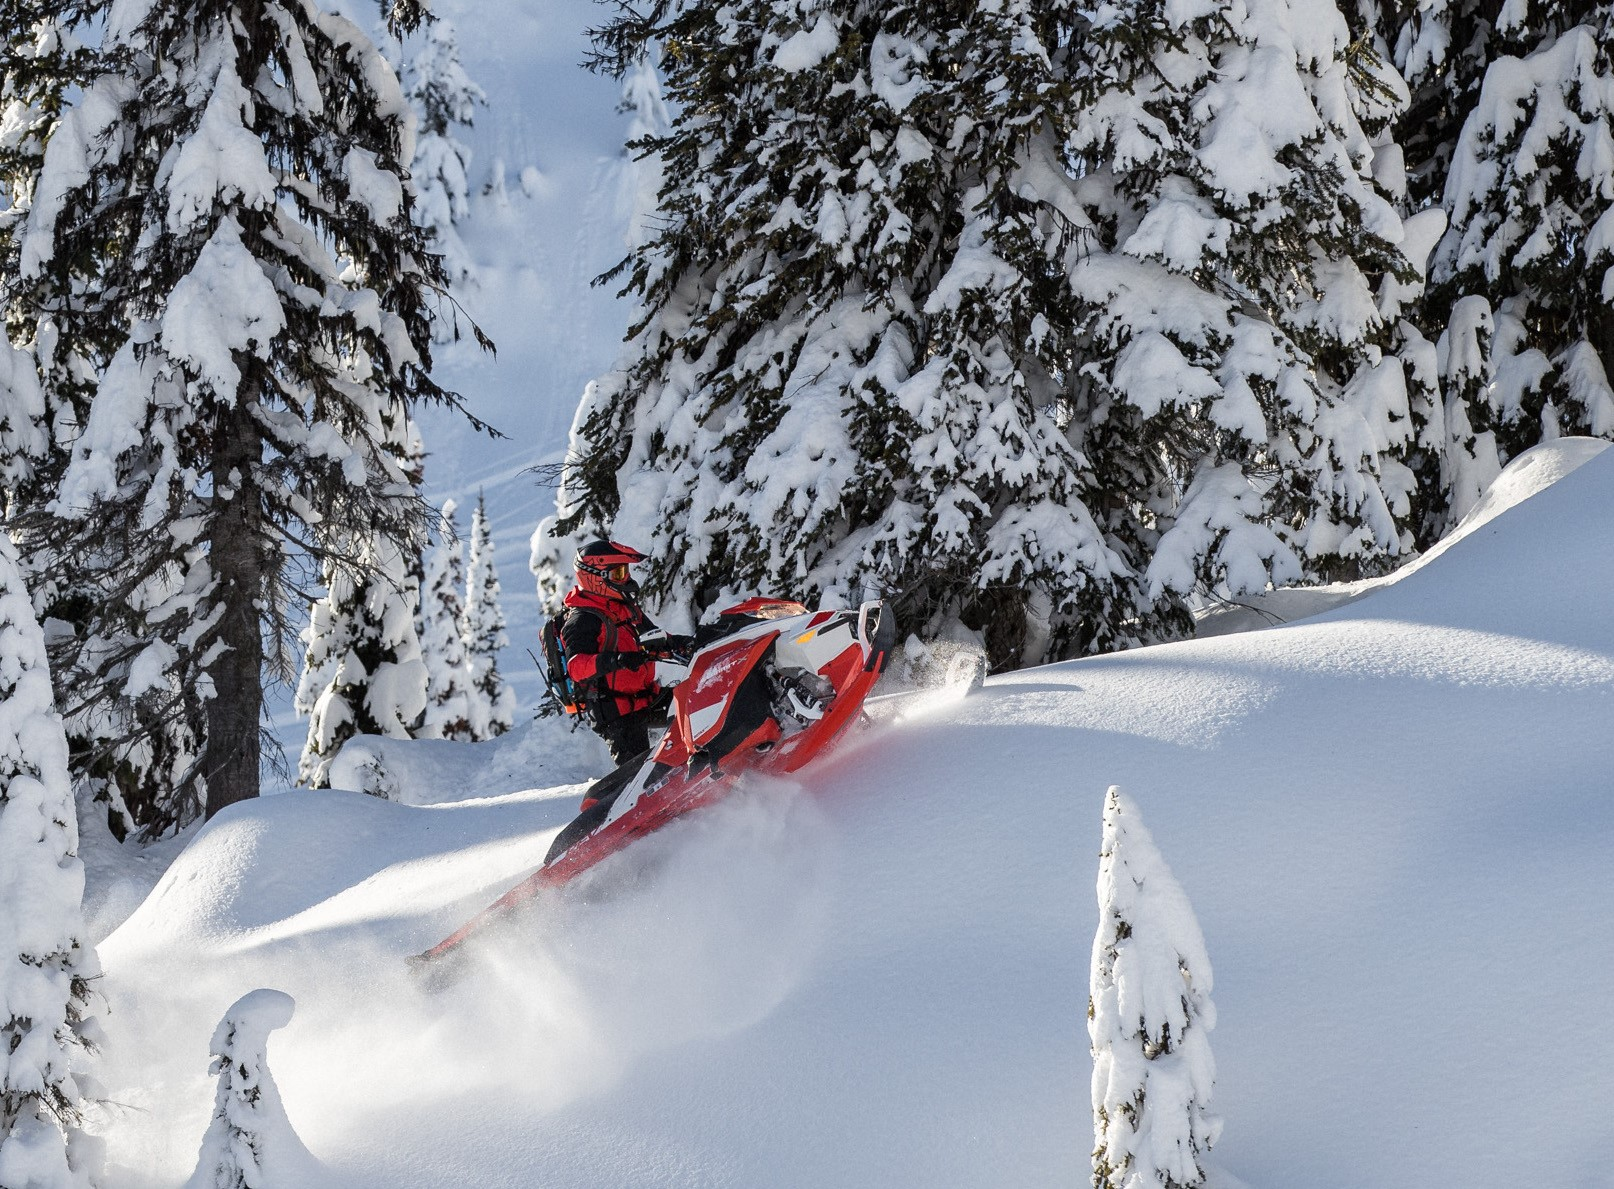 Ski-Doo - The Summit X gets an Expert package to push riding boundaries. © BRP 2019